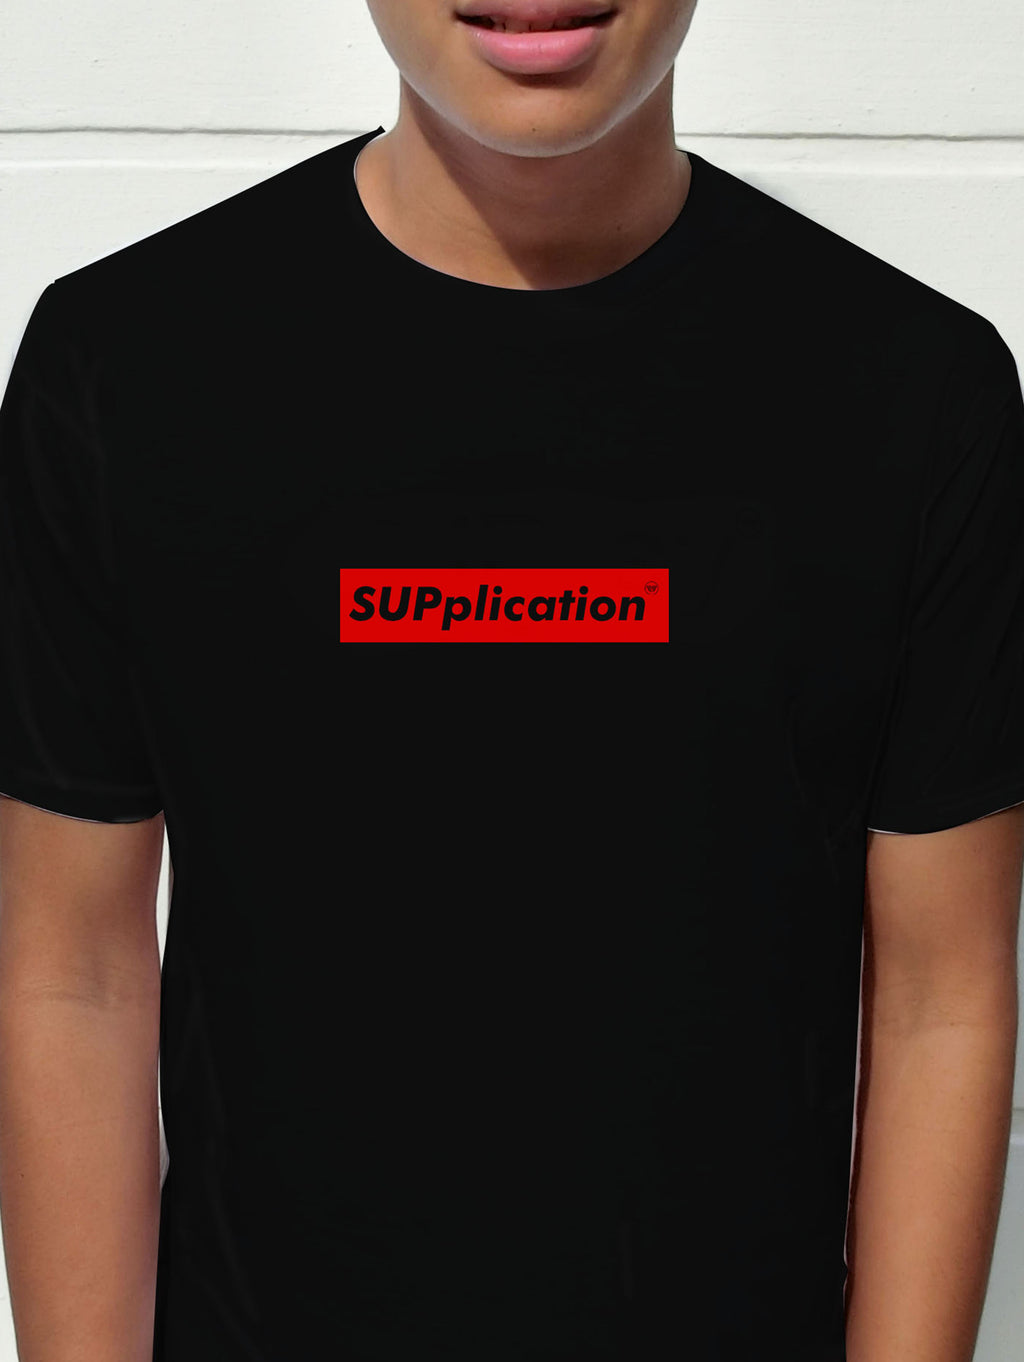 Tshirt - Supplication in Black